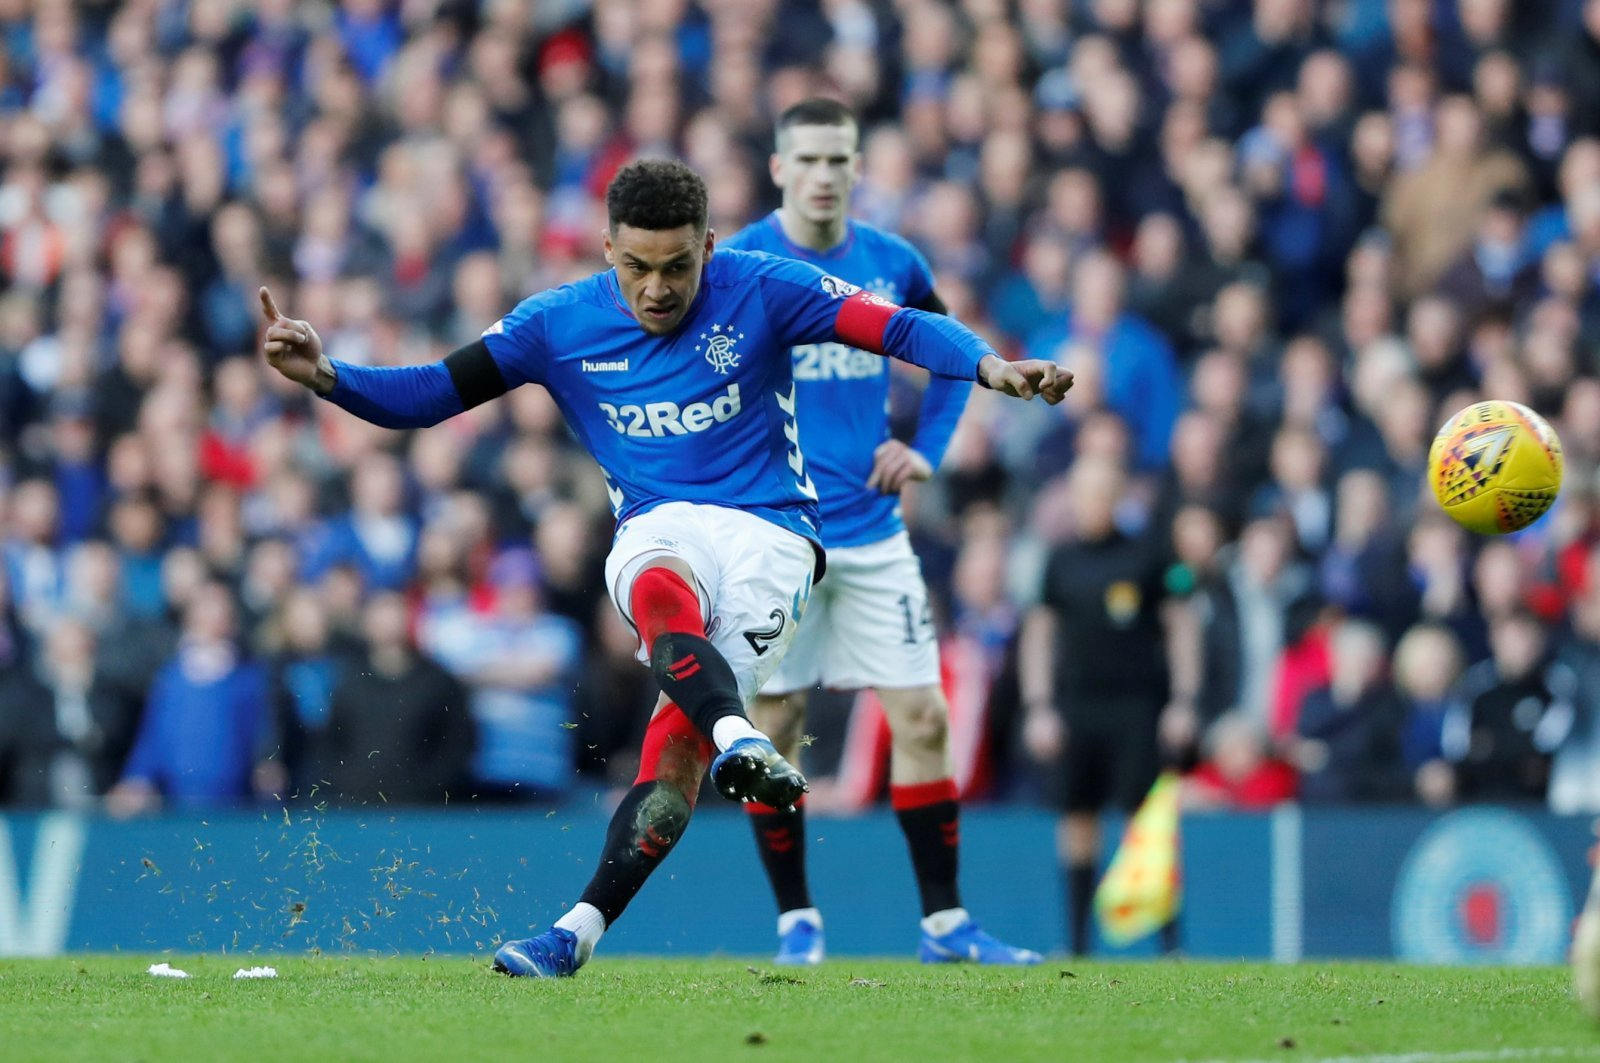 Gers contract extension revelation for key men